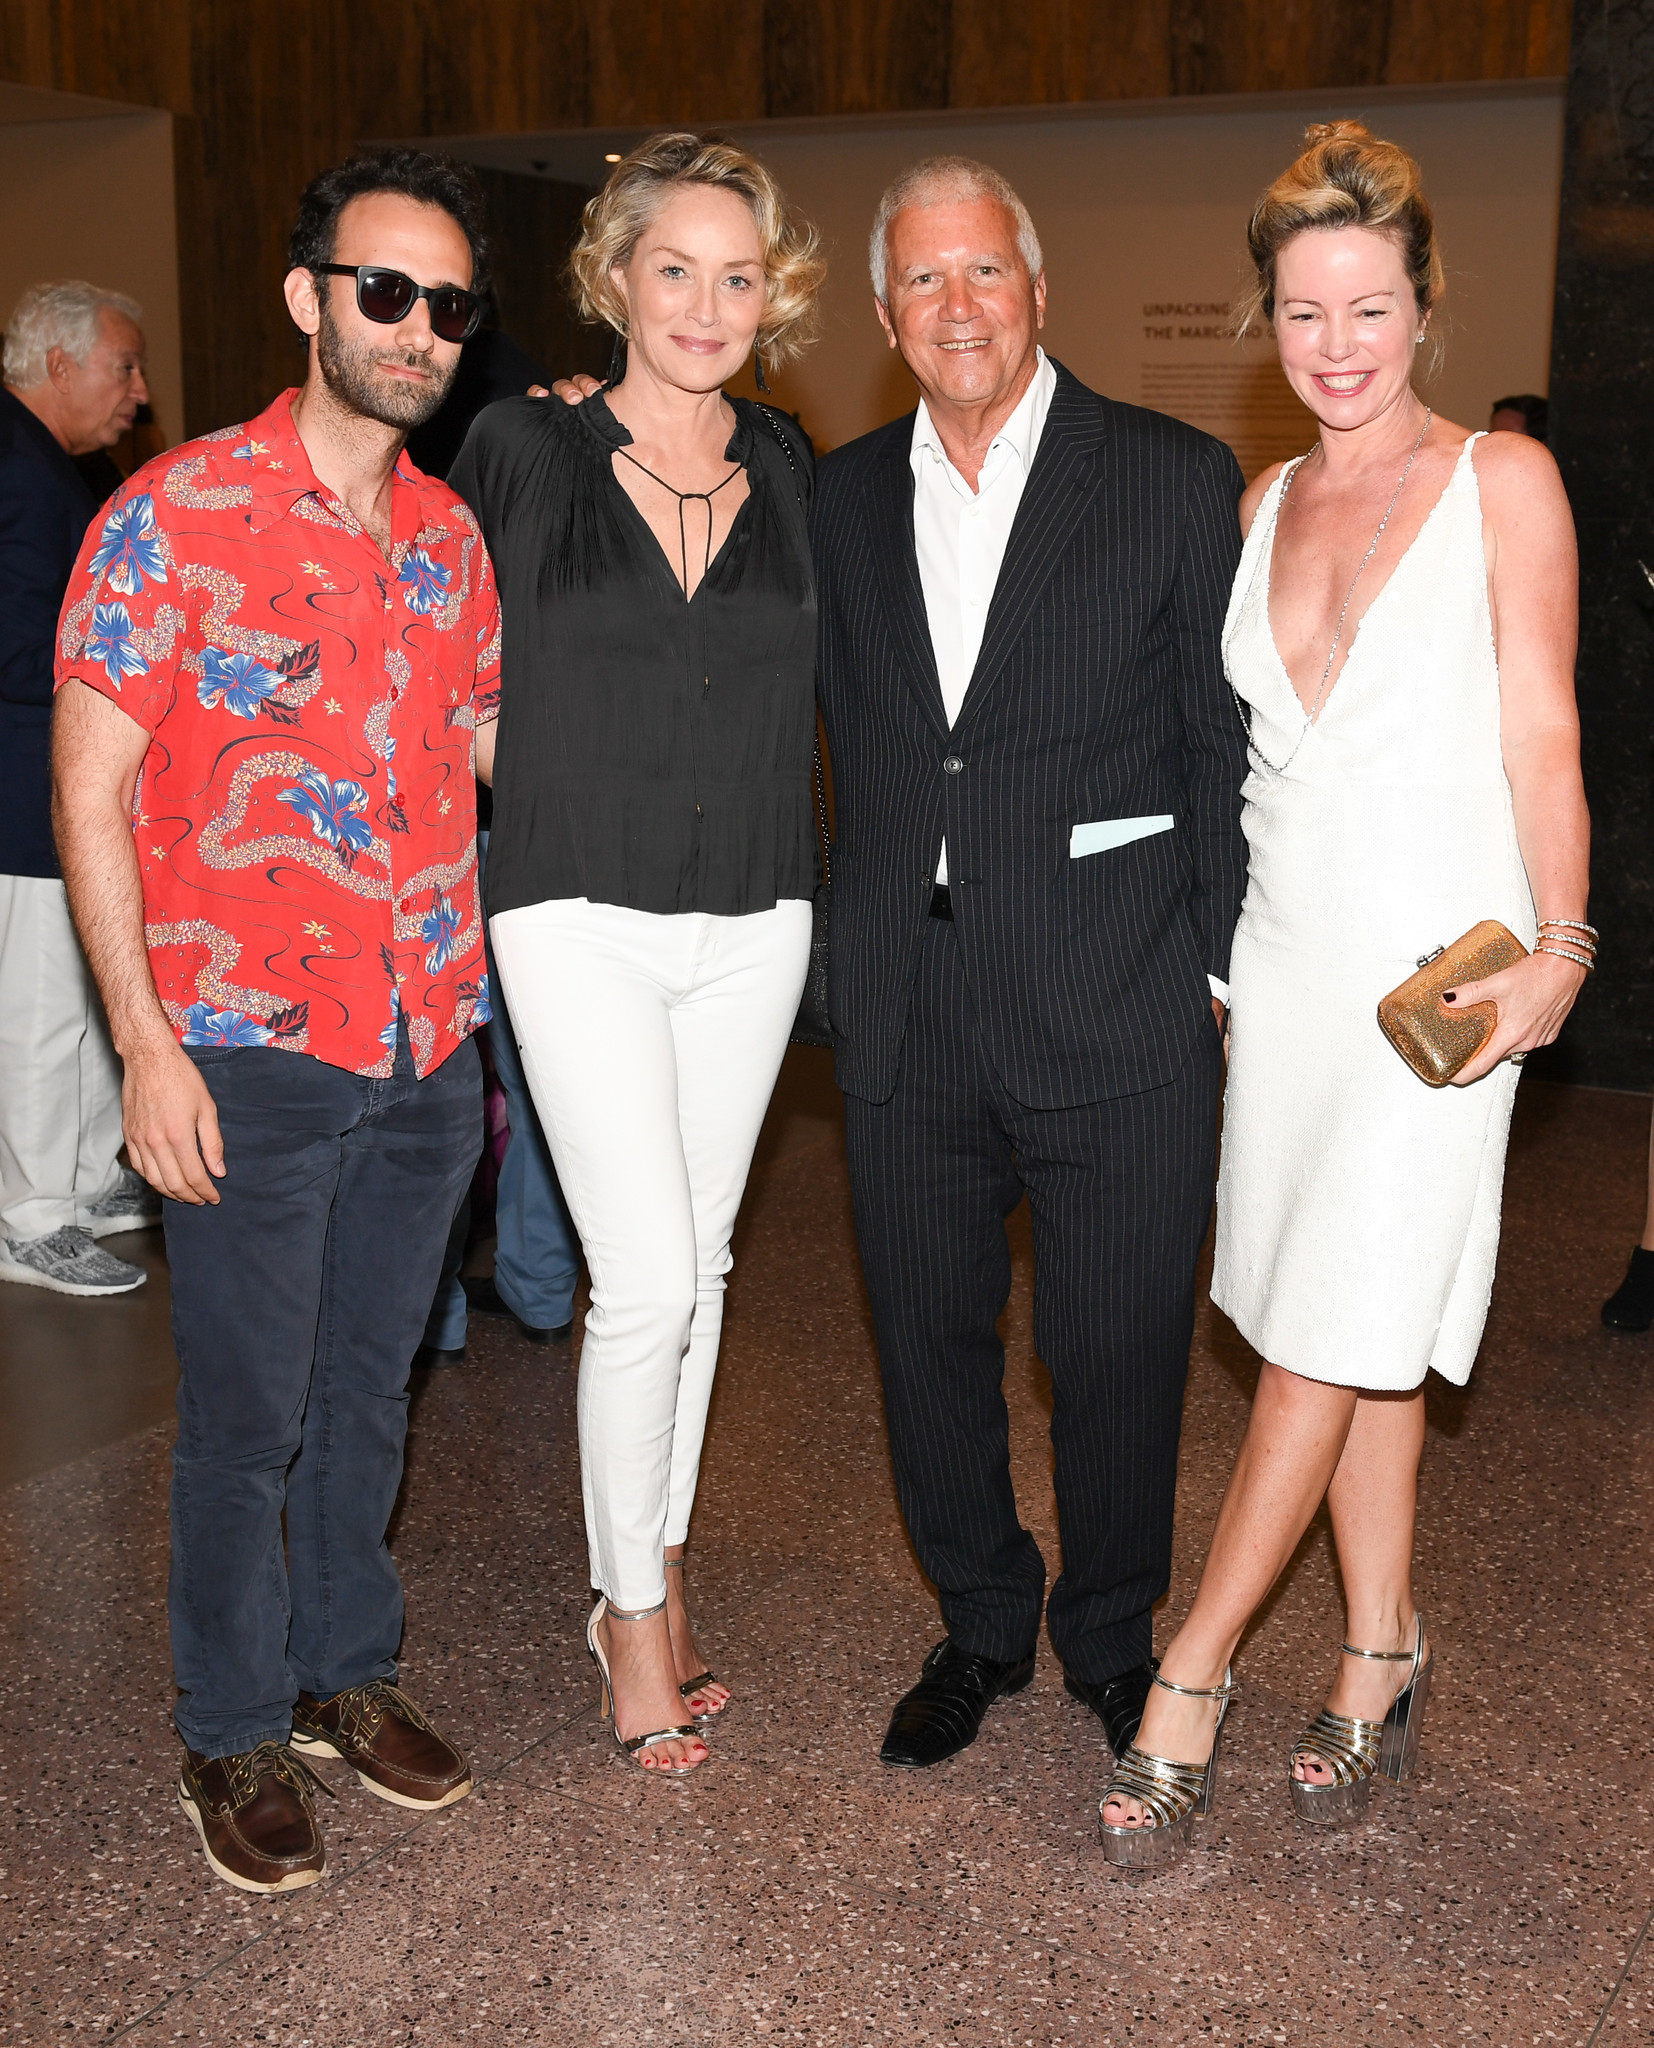 Artist Alex Israel, Sharon Stone and art dealers Larry Gagosian and Chrissie Erpf.